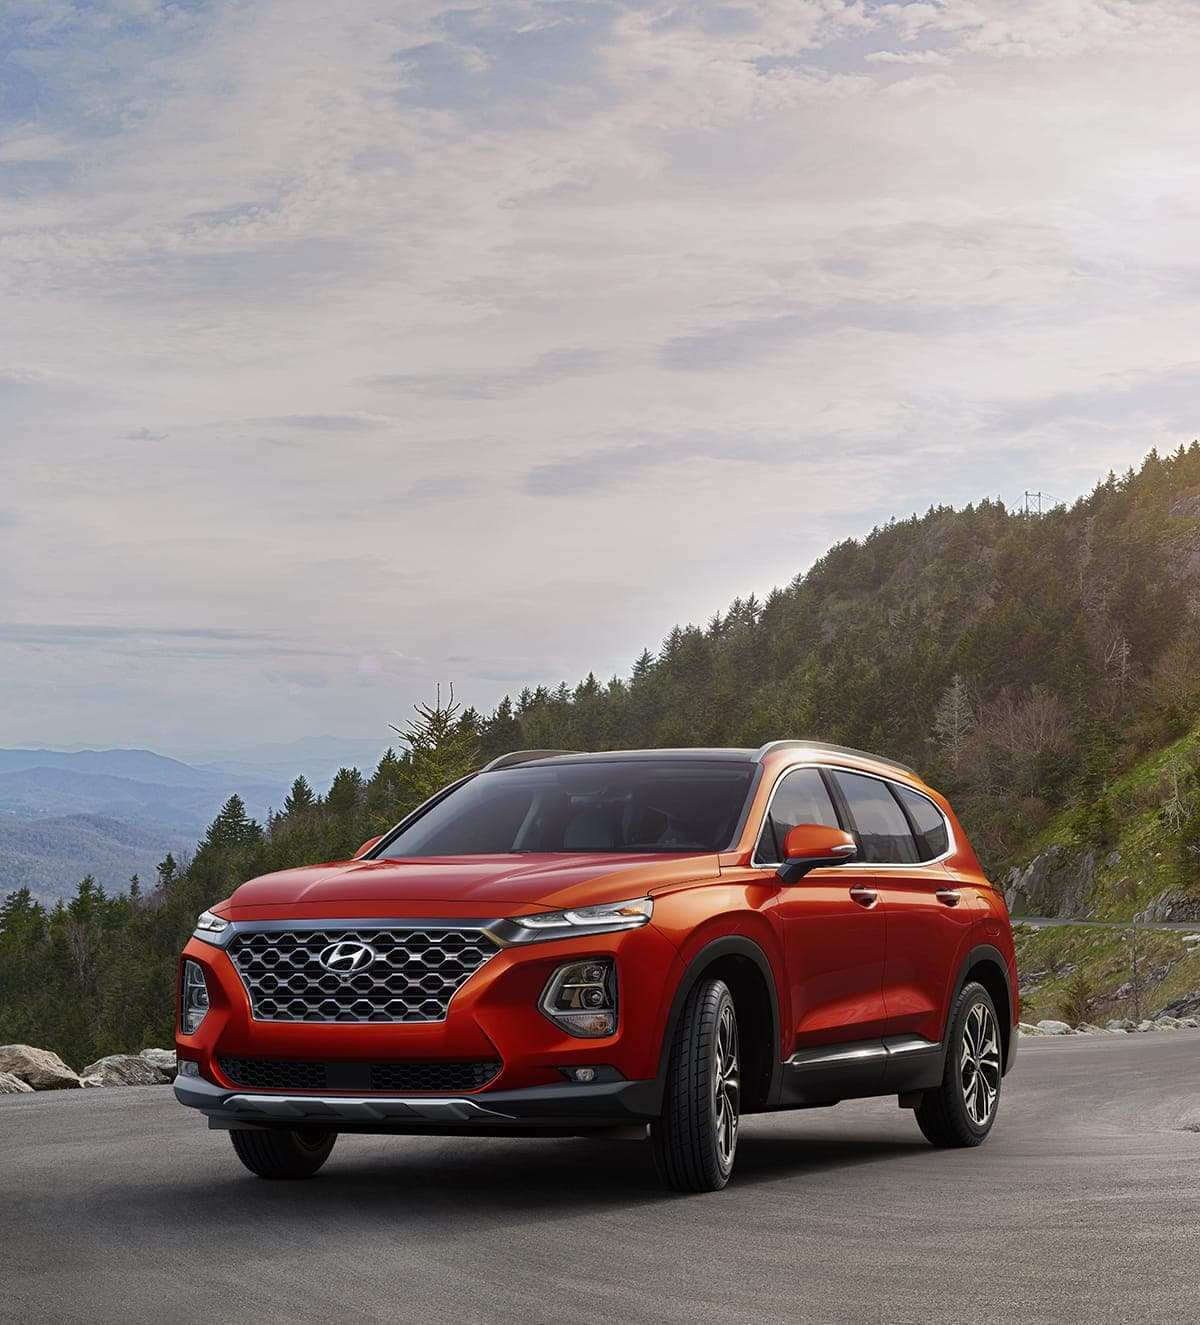 18 New Hyundai Santa Fe 2020 Performance